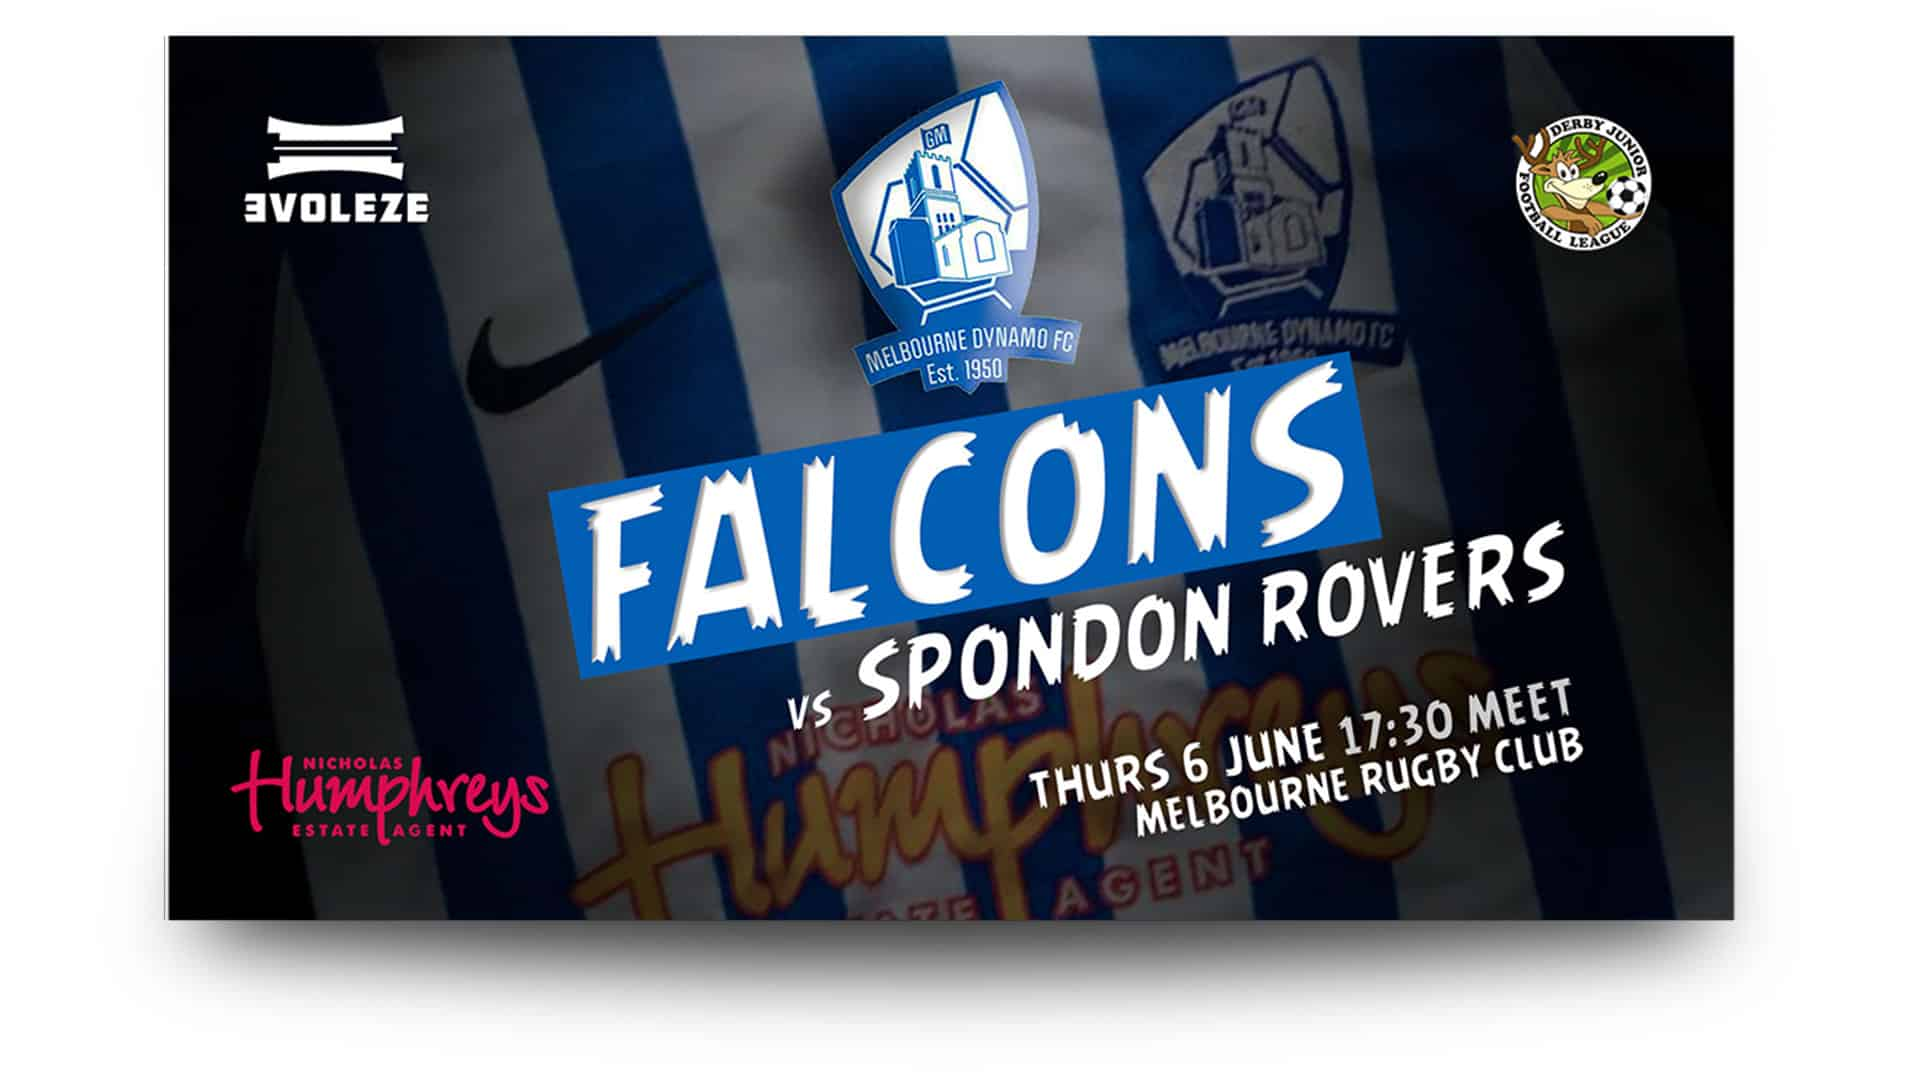 melbourne dynamo falcons - matchday graphics